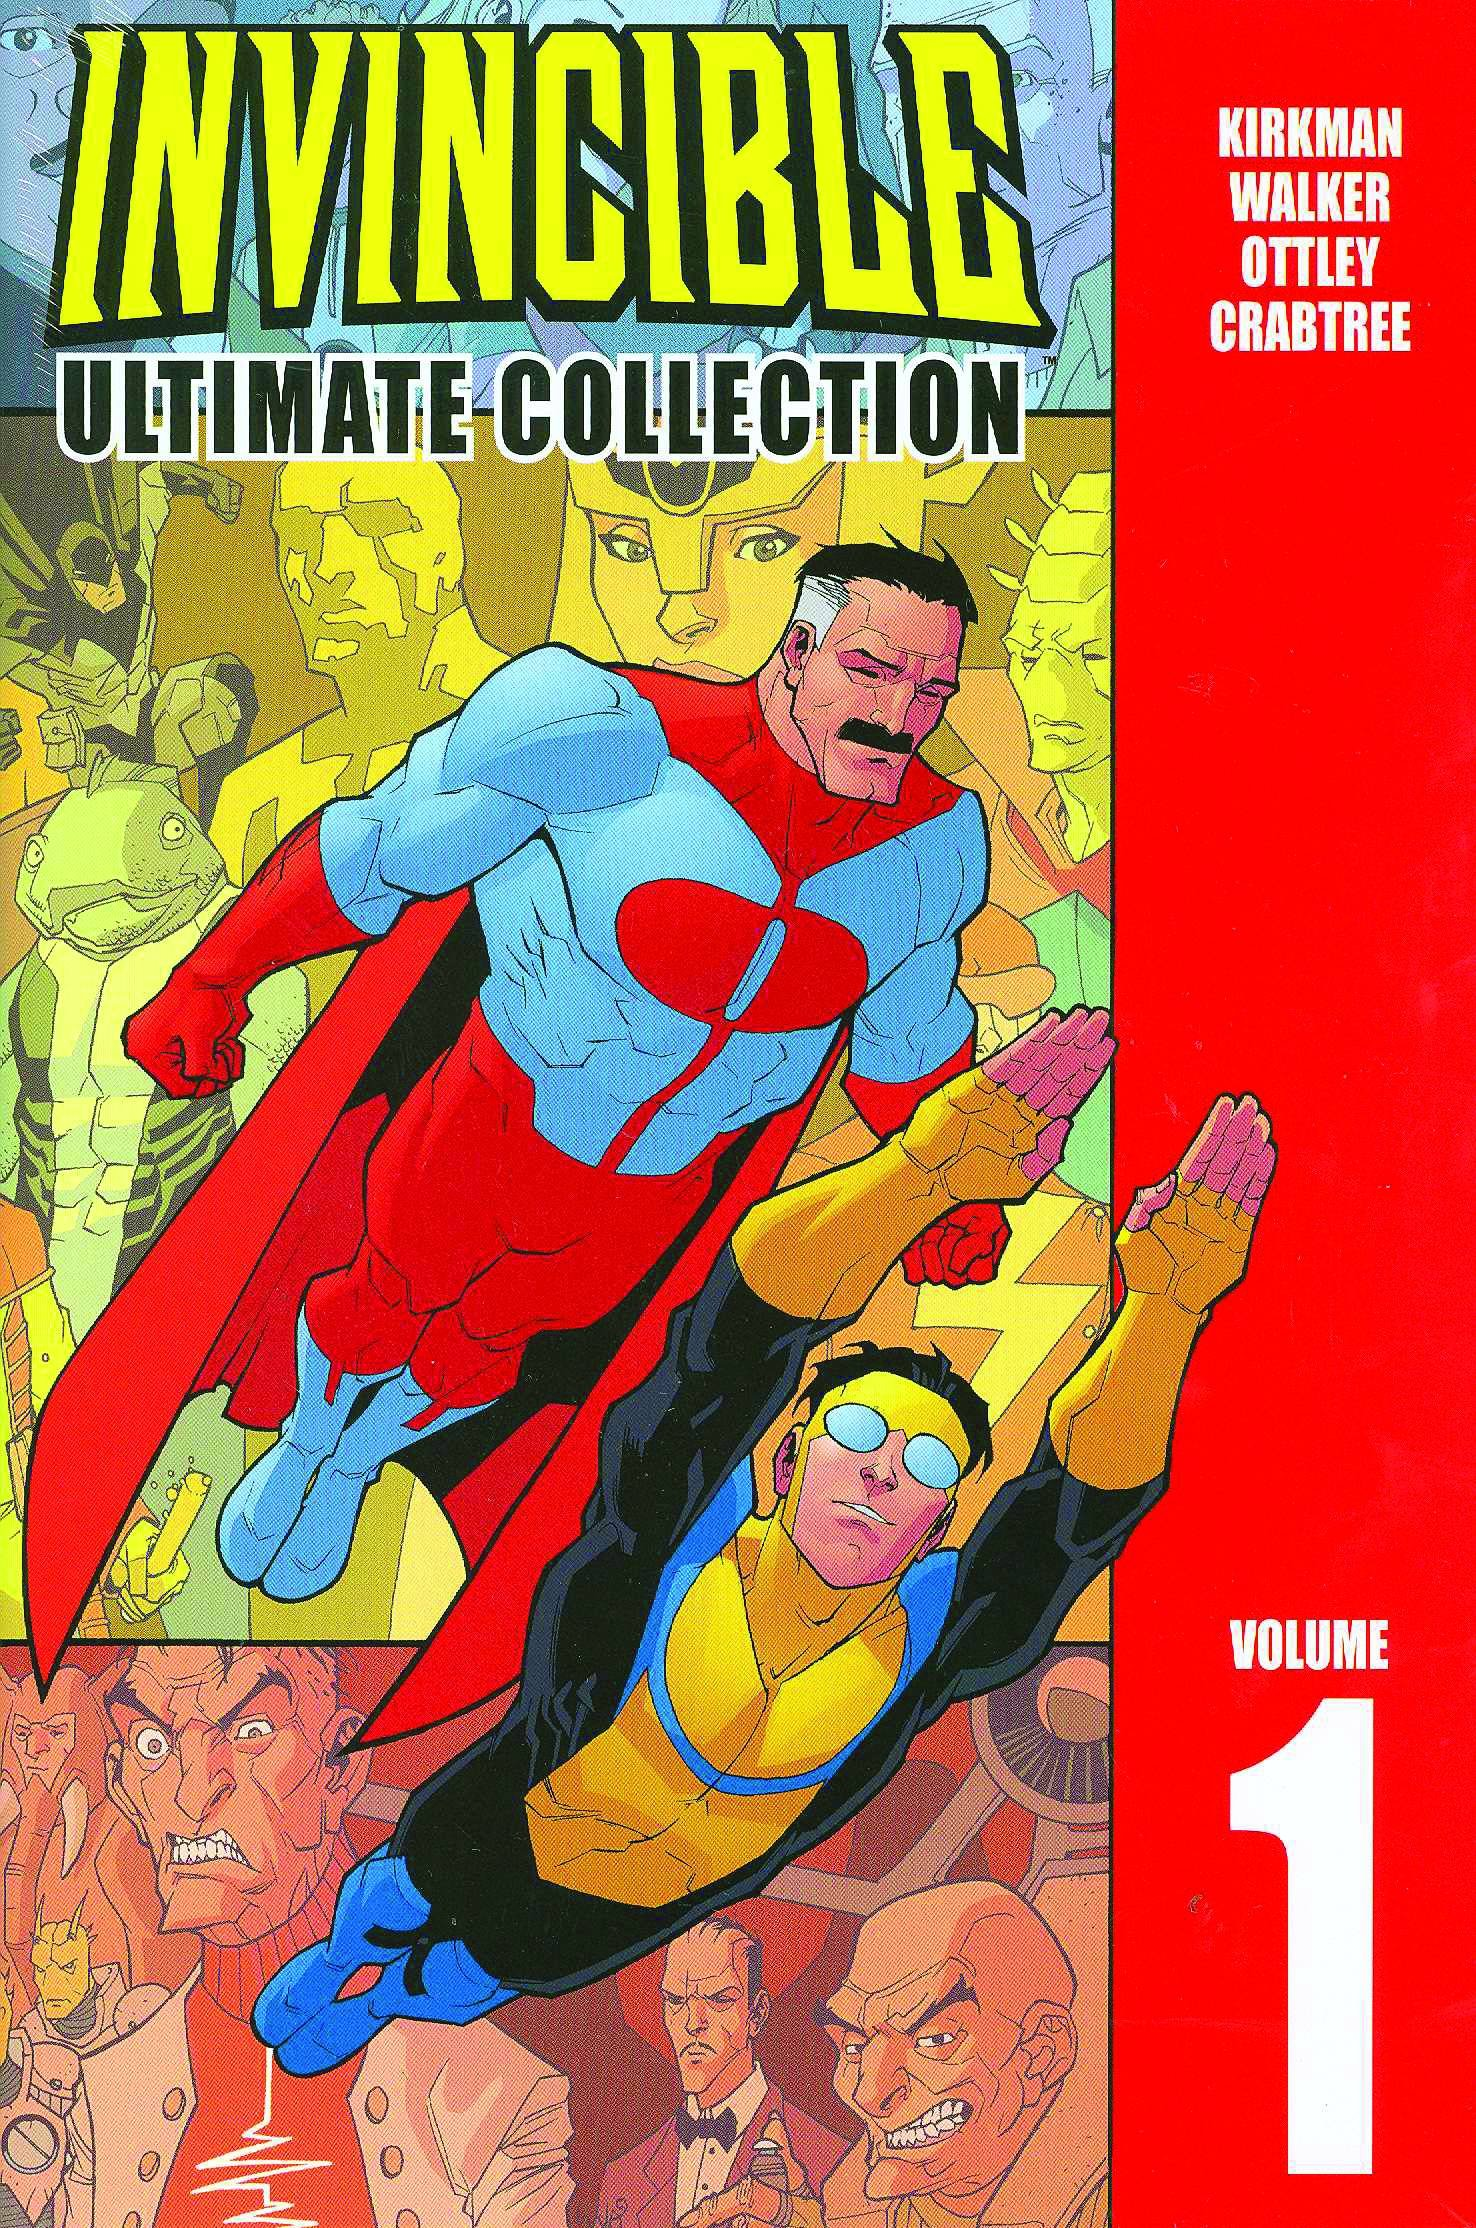 Read Online Invincible: The Ultimate Collection, Vol. 1 ebook